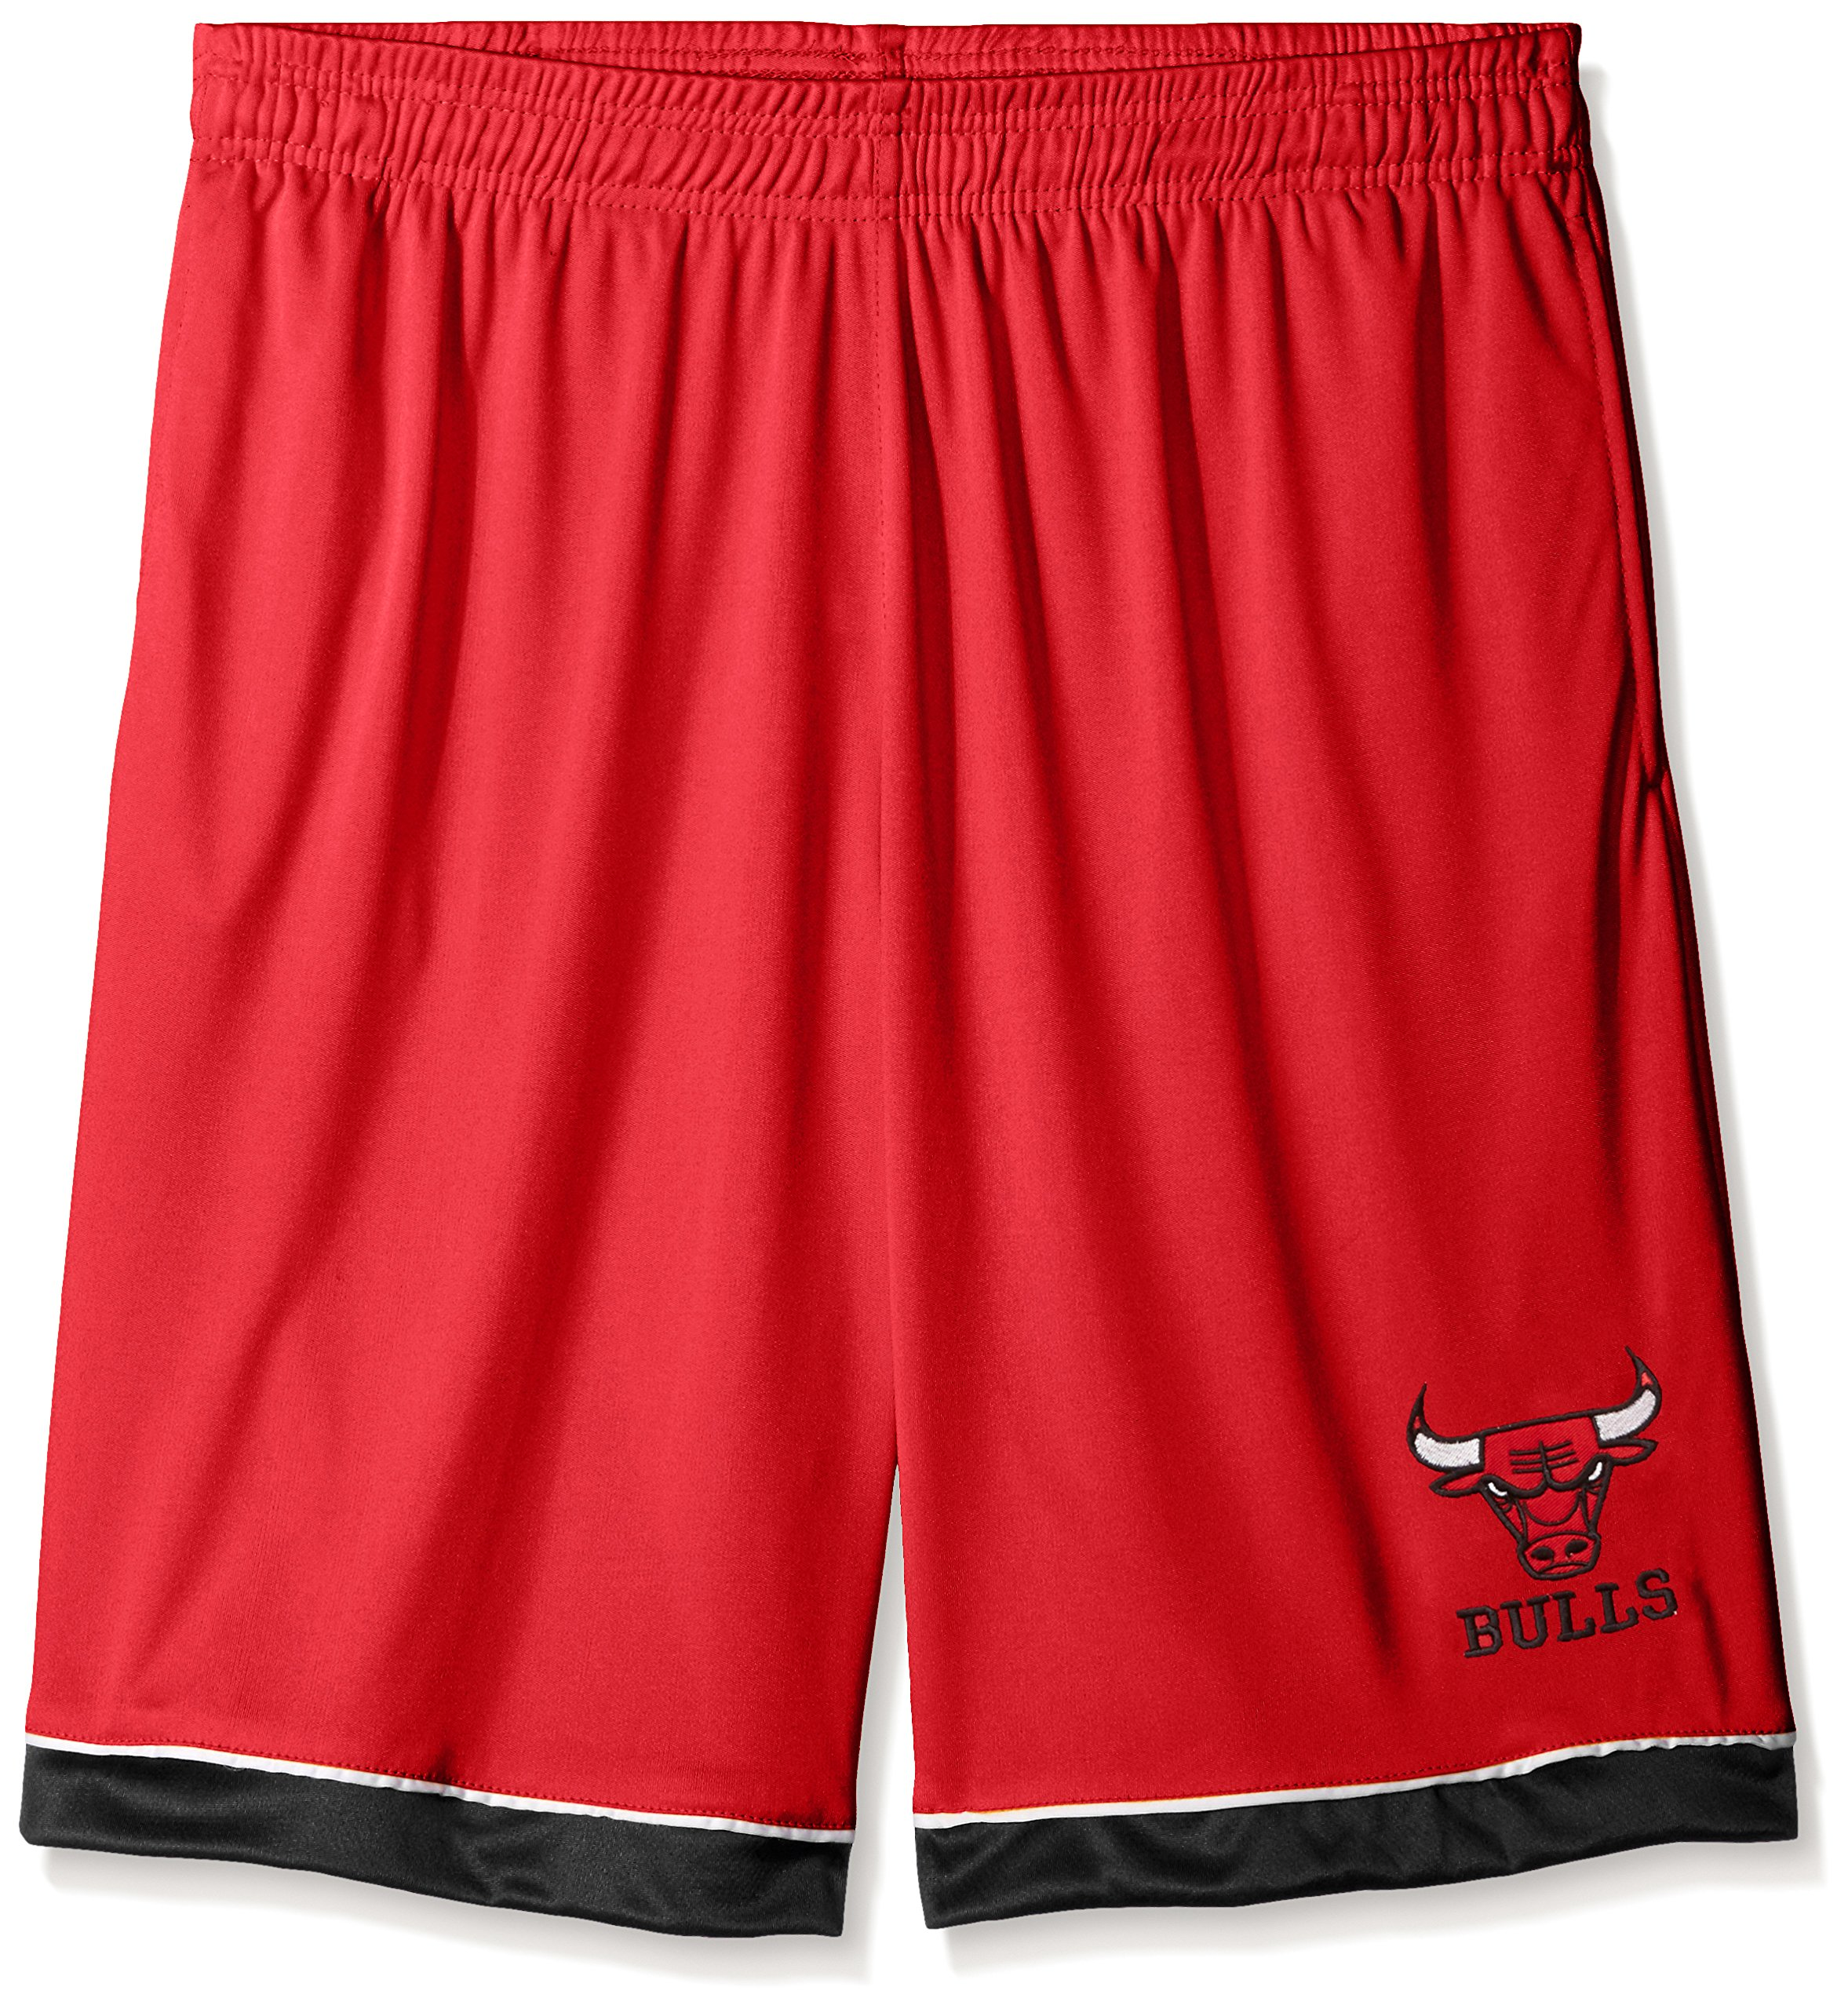 Profile Big & Tall NBA Chicago Bulls Men's Poly Jersey Lower Trim Shorts, 4X, Red